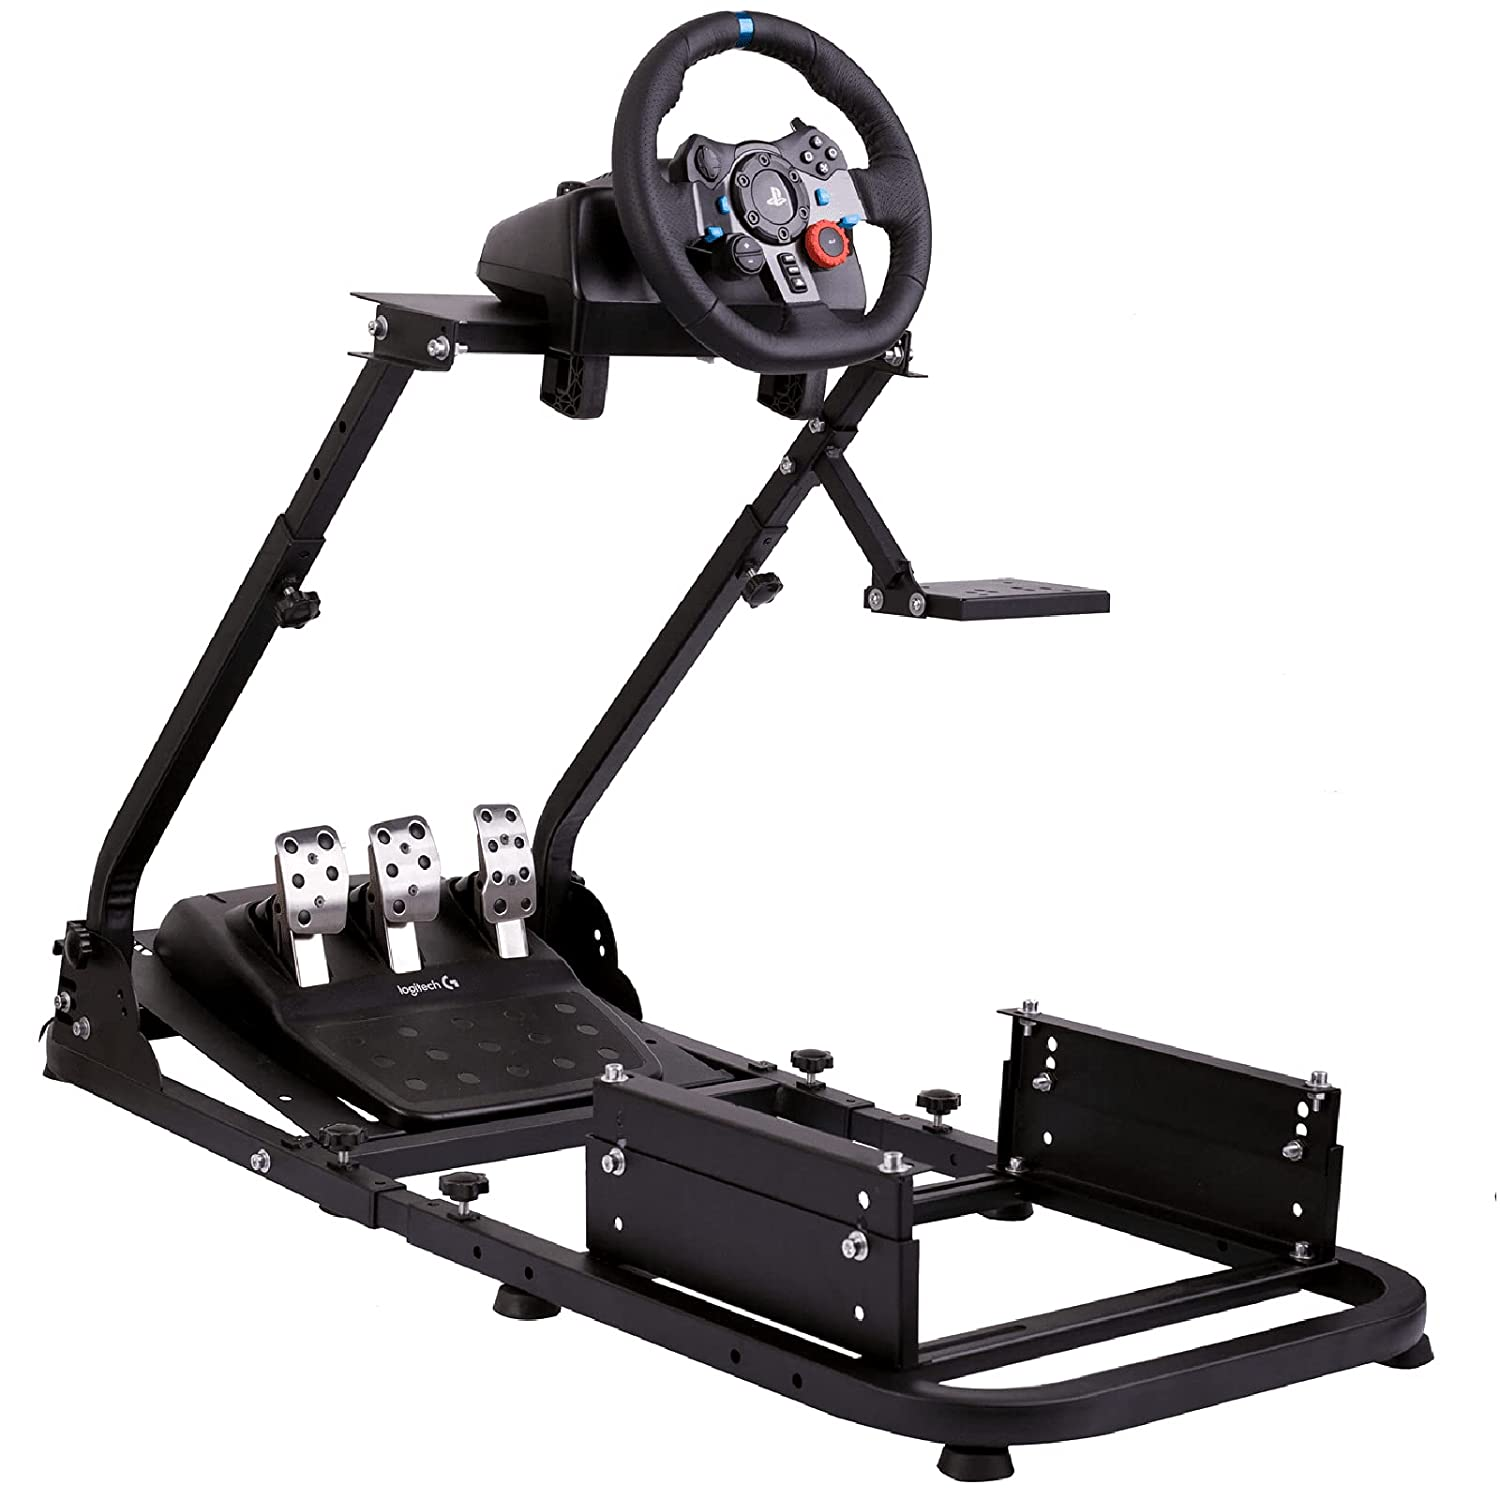 Anman Racing Wheel Stand fit for PC Adjustable PS4 Popular XBOX Max 72% OFF S